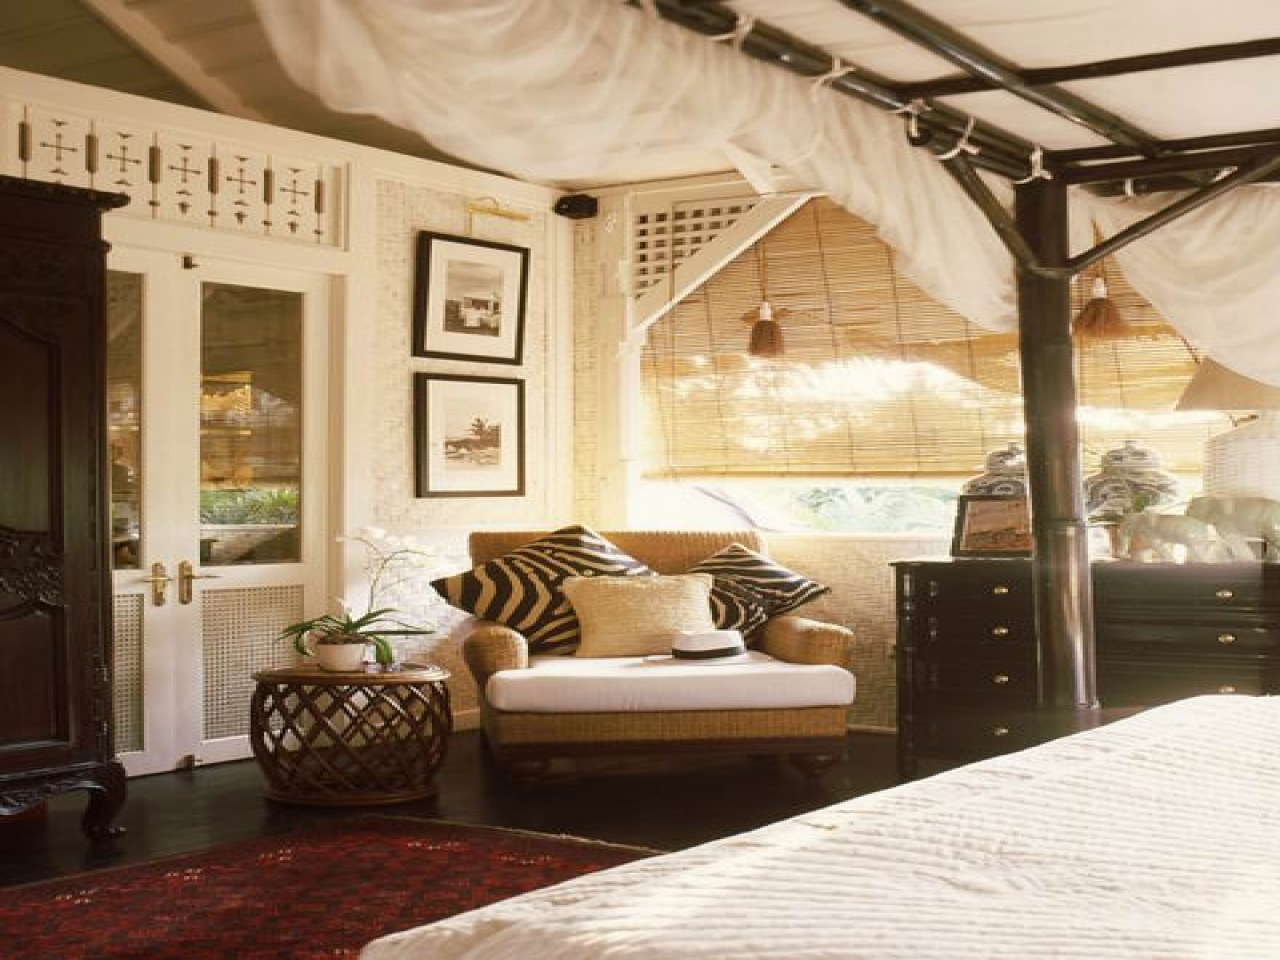 British colonial style bedroom tropical style bedroom british colonial house designs for British colonial style bedroom